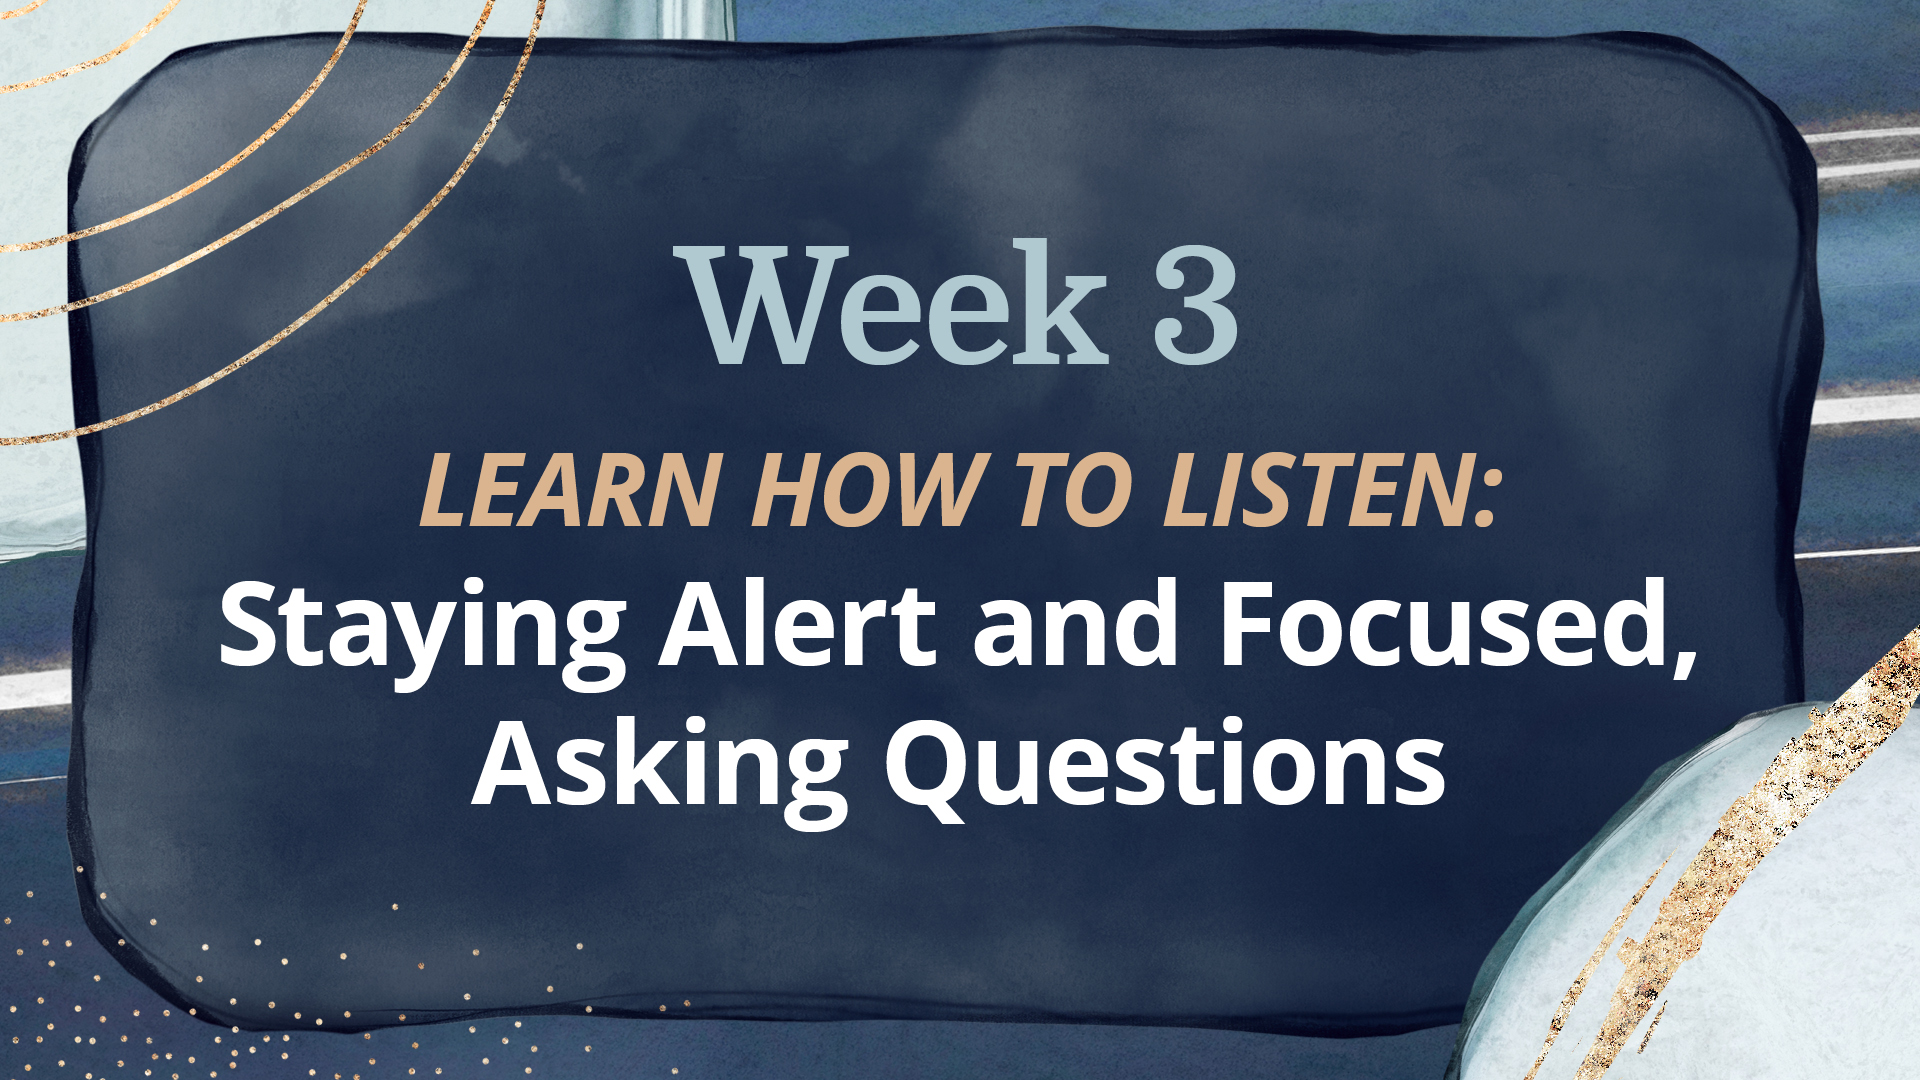 WEEK 3: Staying Alert and Focused, Asking Questions